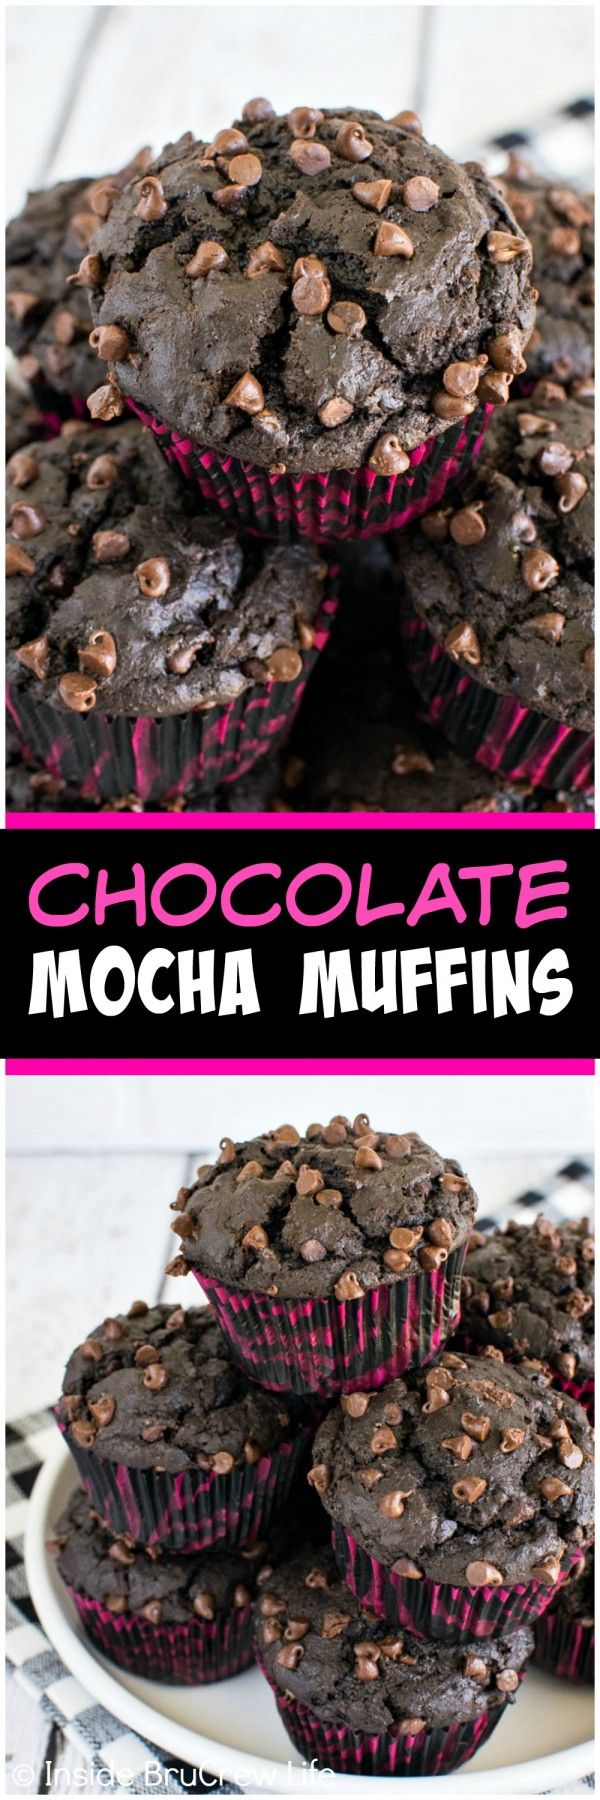 Chocolate Mocha Muffins - two times the chocolate in these muffins makes them irresistible!  Great breakfast recipe!